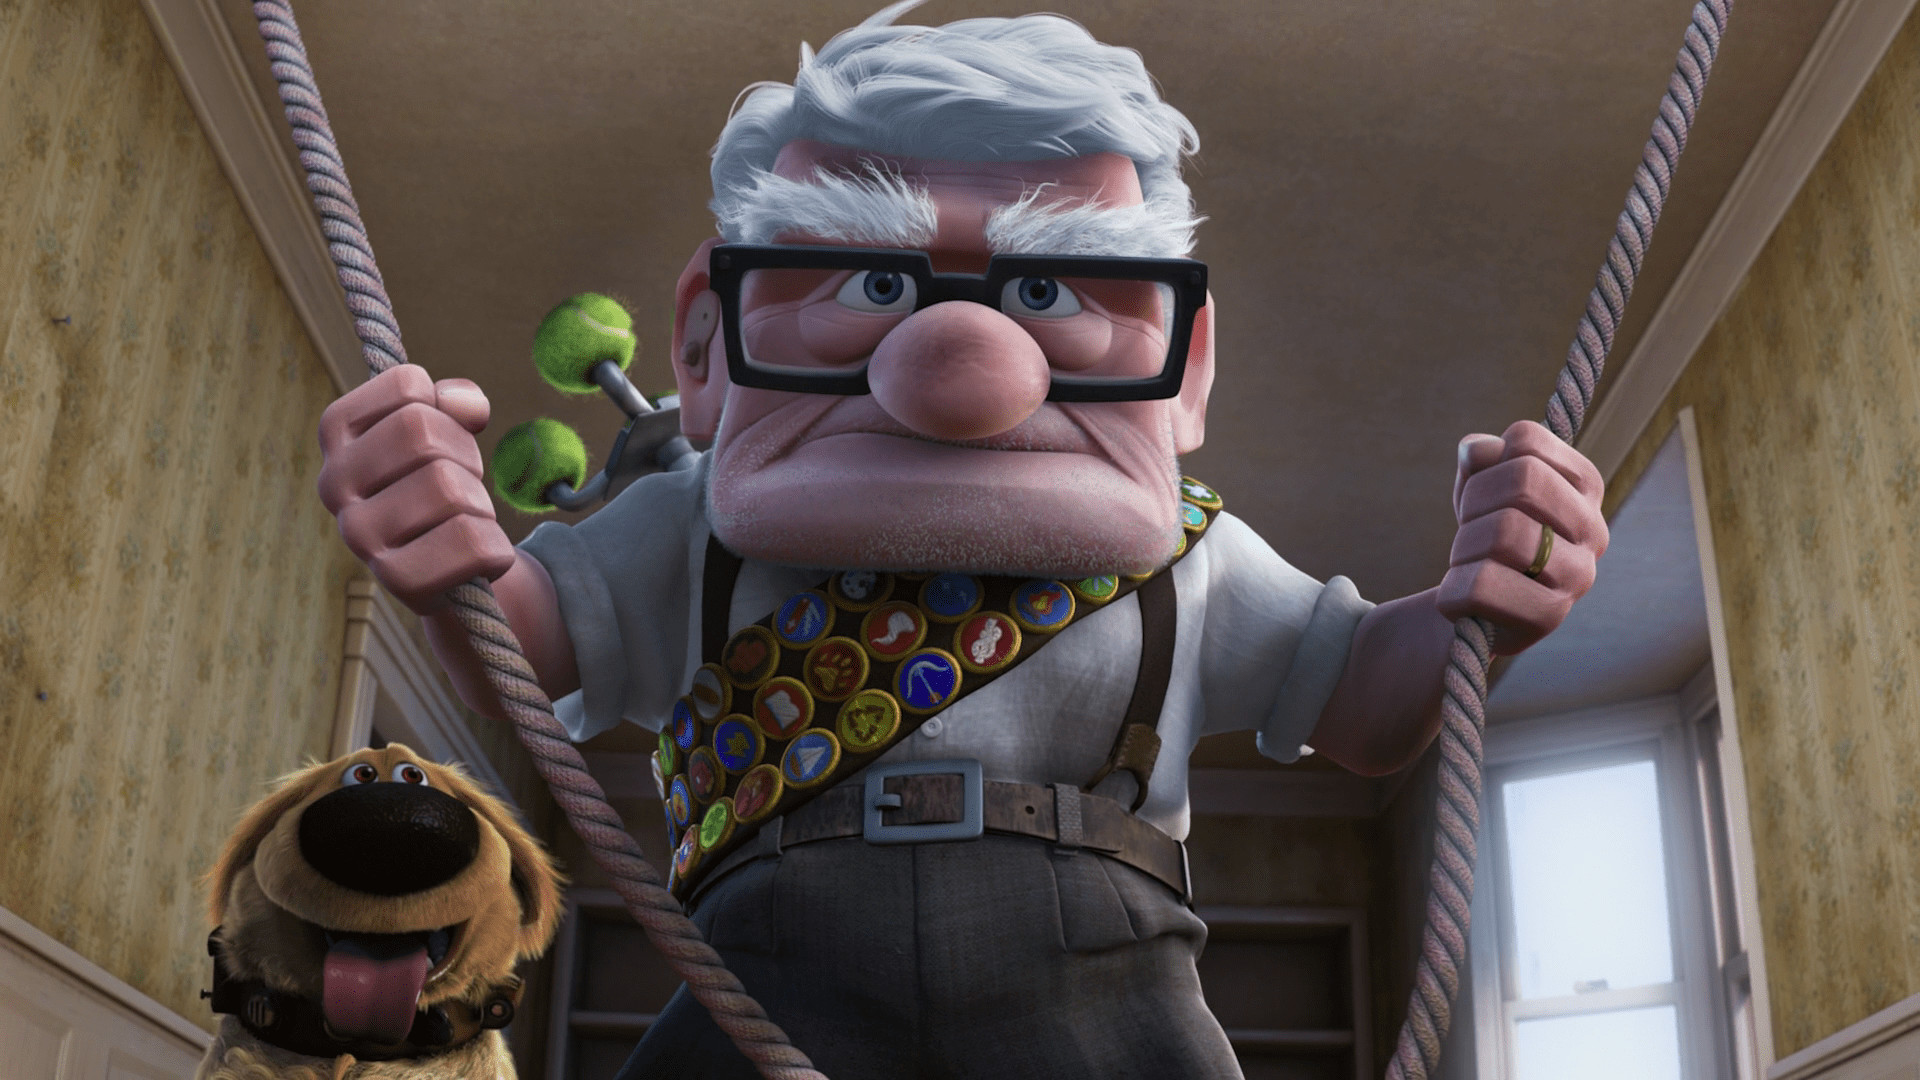 1920x1080 Pixar Up Wallpaper  Pixar Up Movie